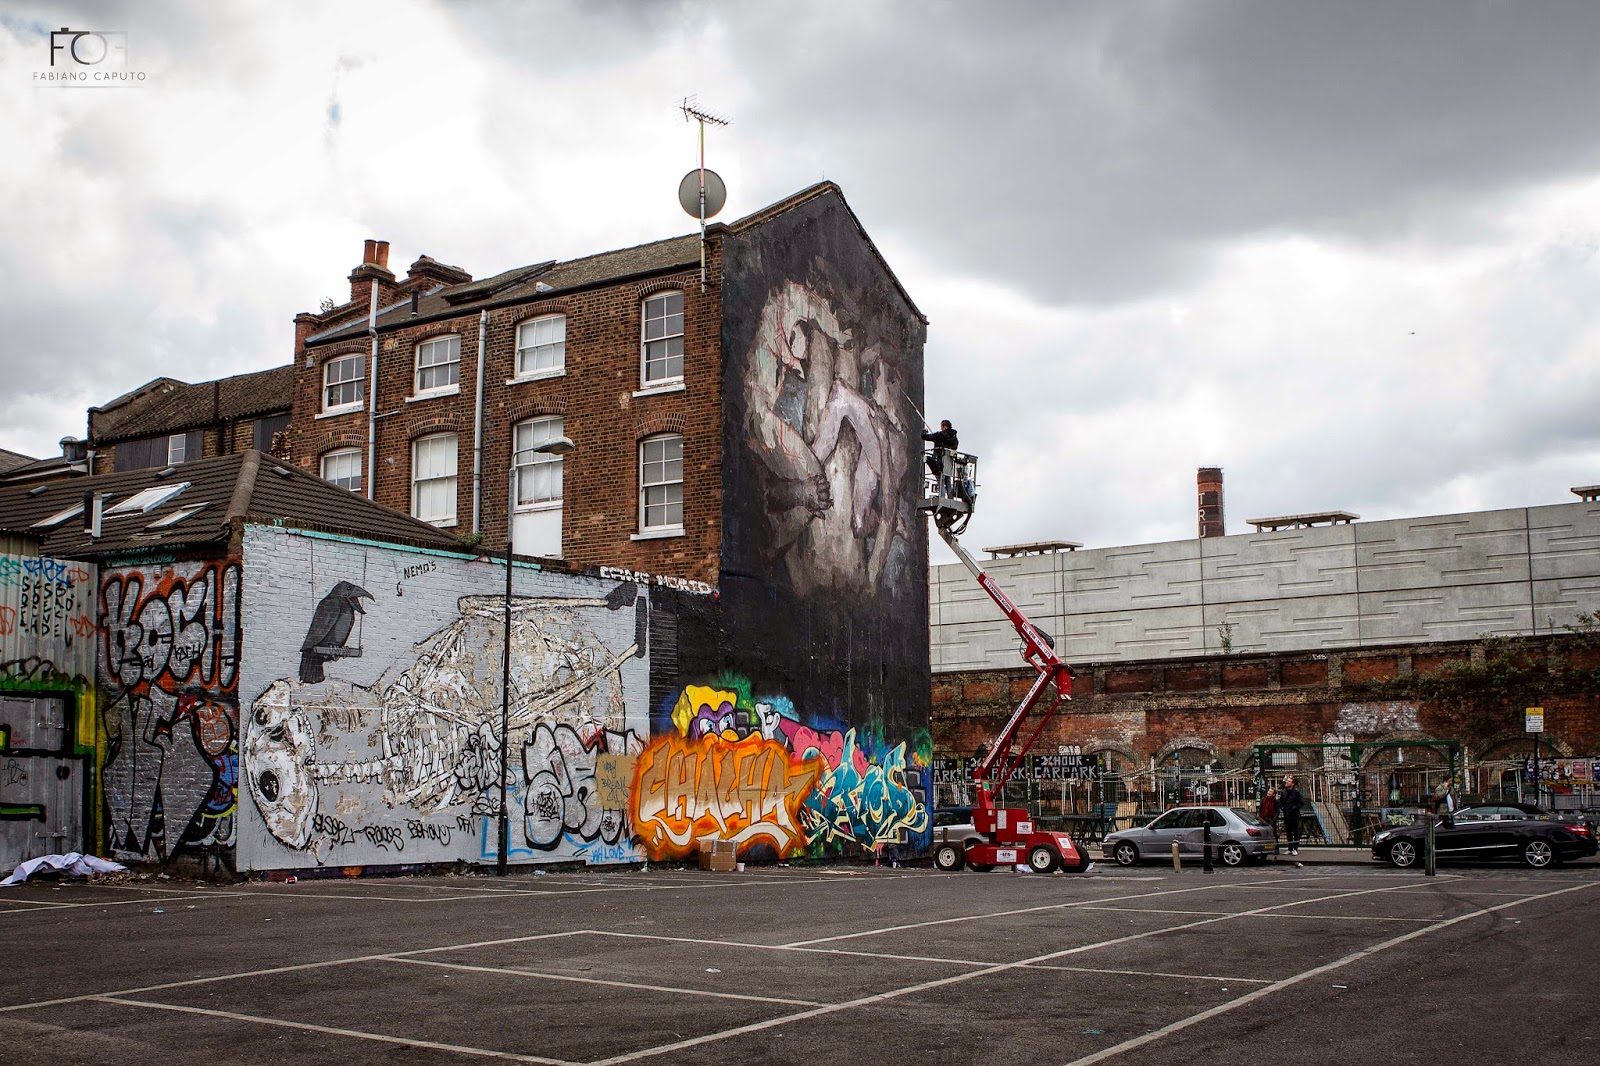 borondo-triade-new-mural-in-shoreditch-london-09